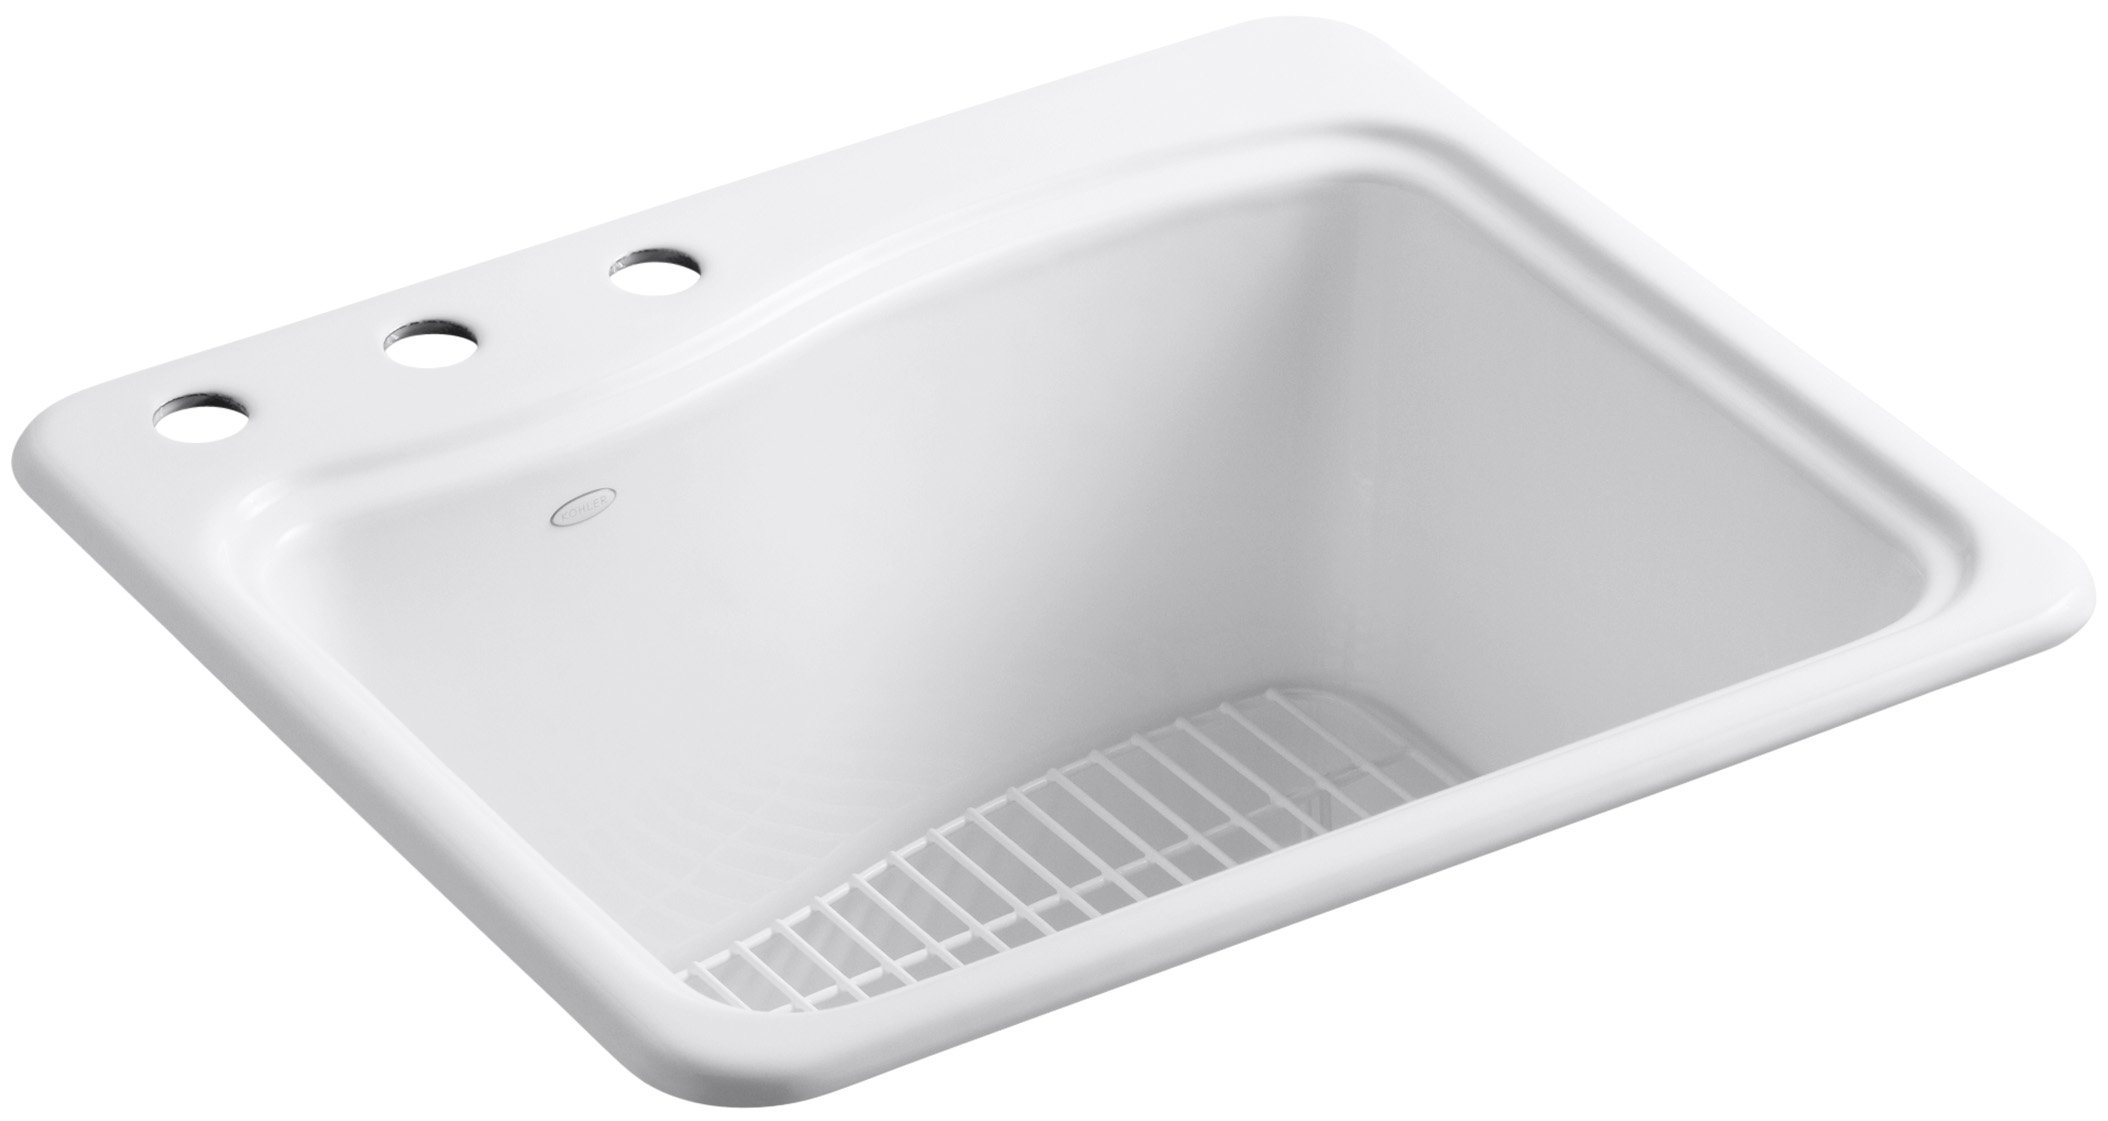 KOHLER K-6657-3-0 River Falls Self-Rimming Sink with Three-Hole Faucet Drilling, White by Kohler